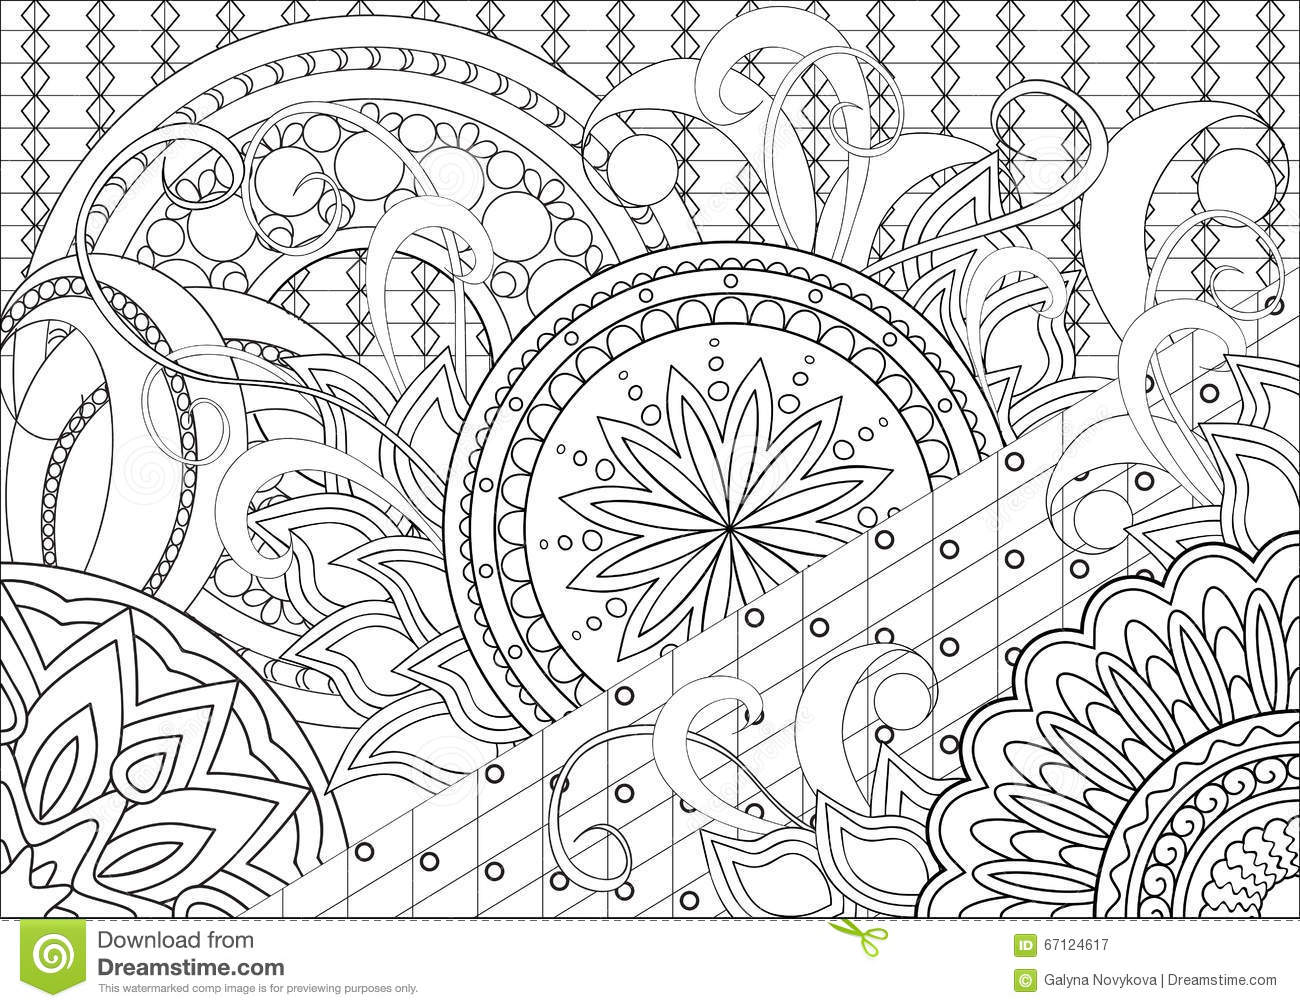 Doodle Flowers And Mandalas Stock Vector Image 67124617